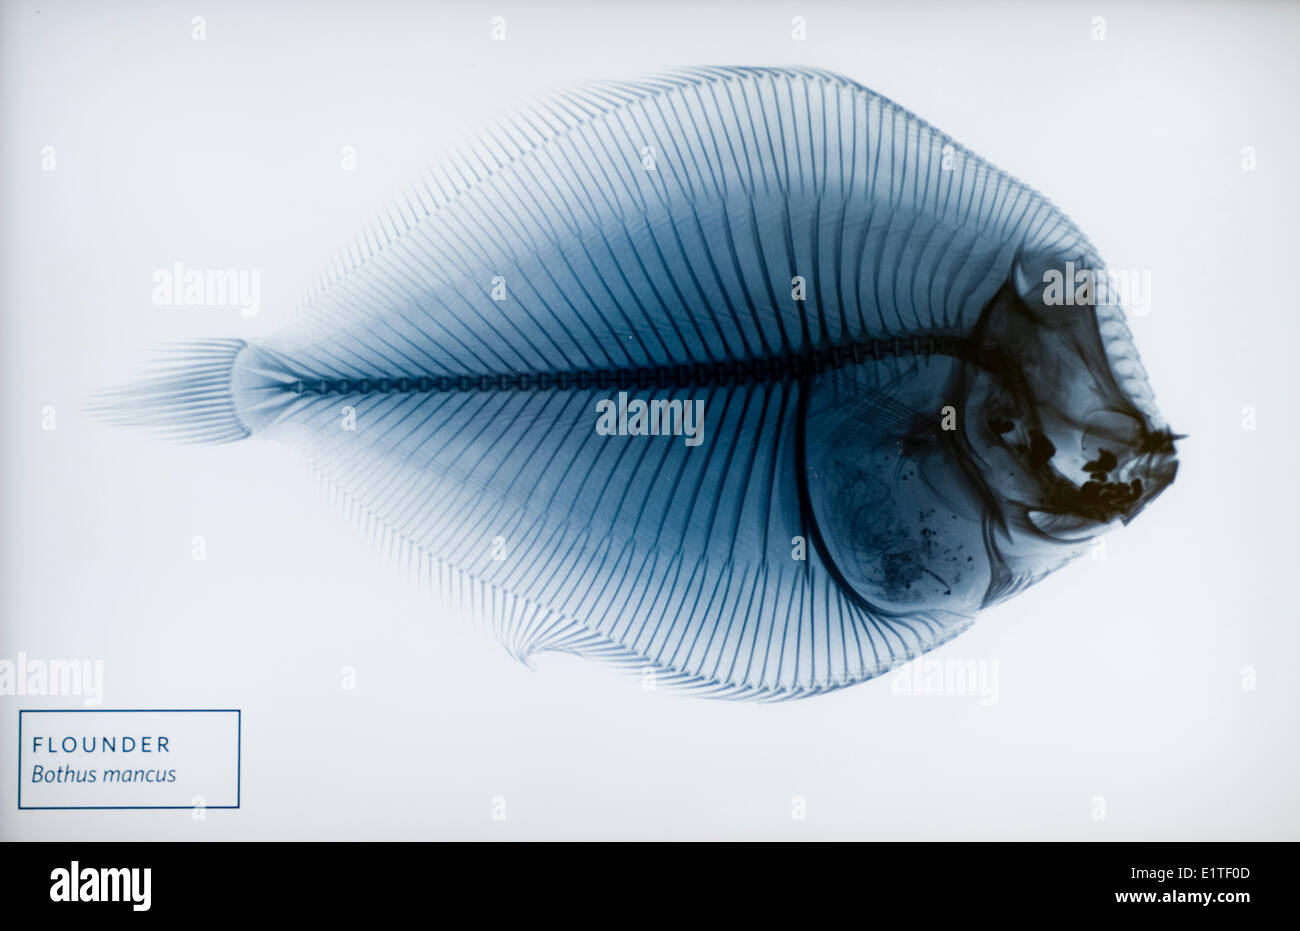 Flounder xray from museum, San Francisco, USA - Stock Image